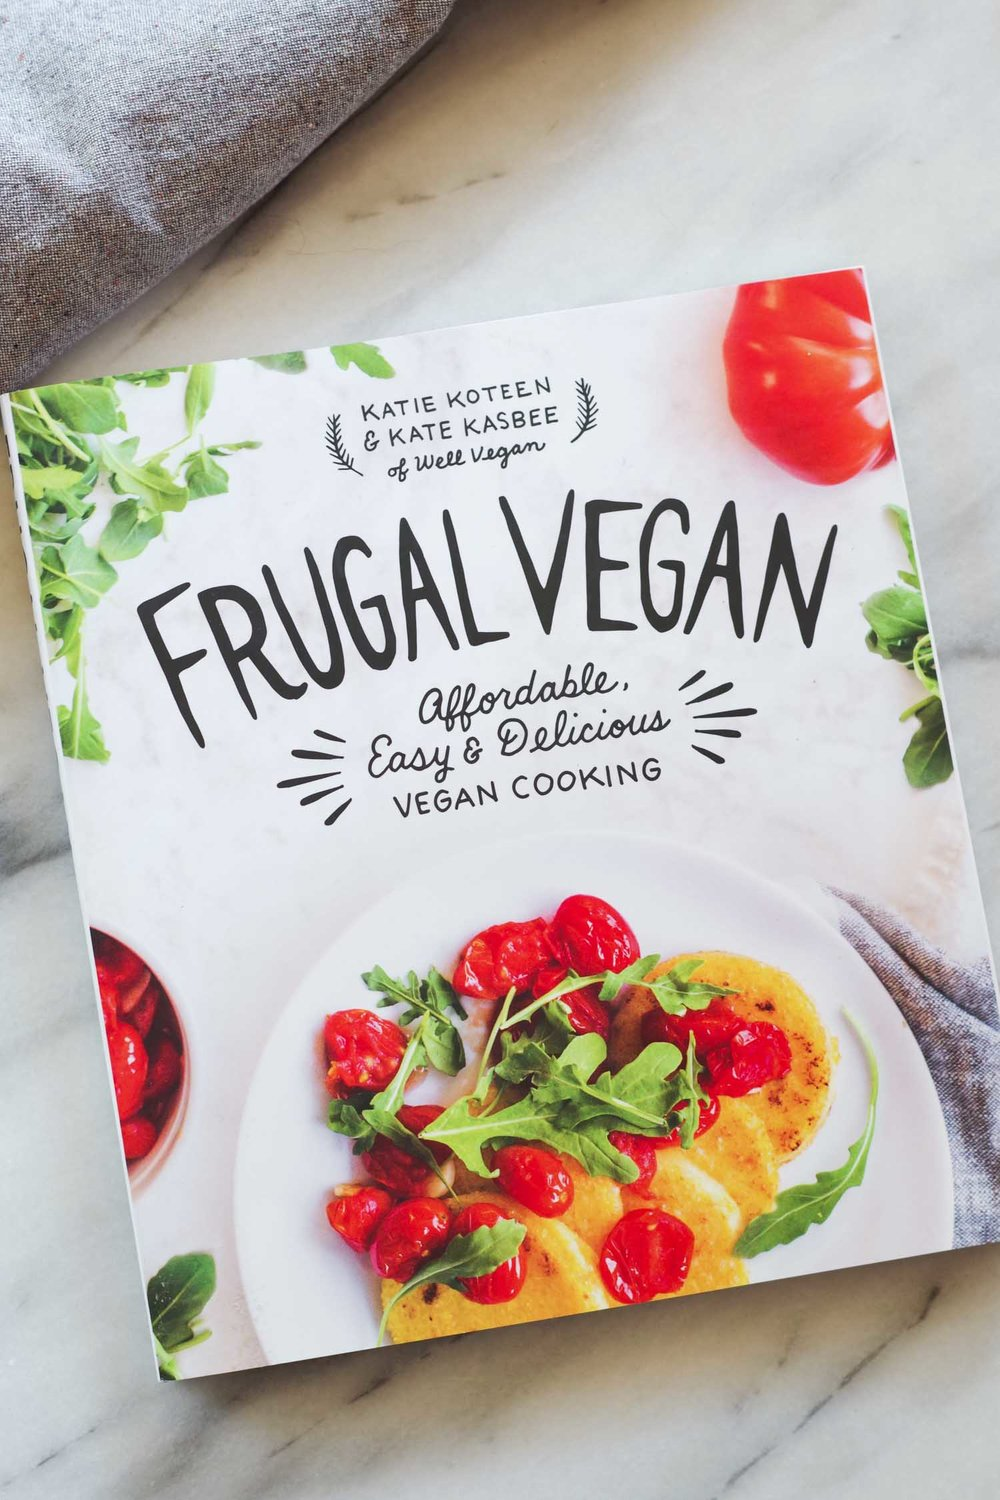 FRUGAL VEGAN:  Affordable, Easy & Delicious Vegan Cooking by Katie Koteen & Kate Kasbee.  Photo by beautiful Ingredient.